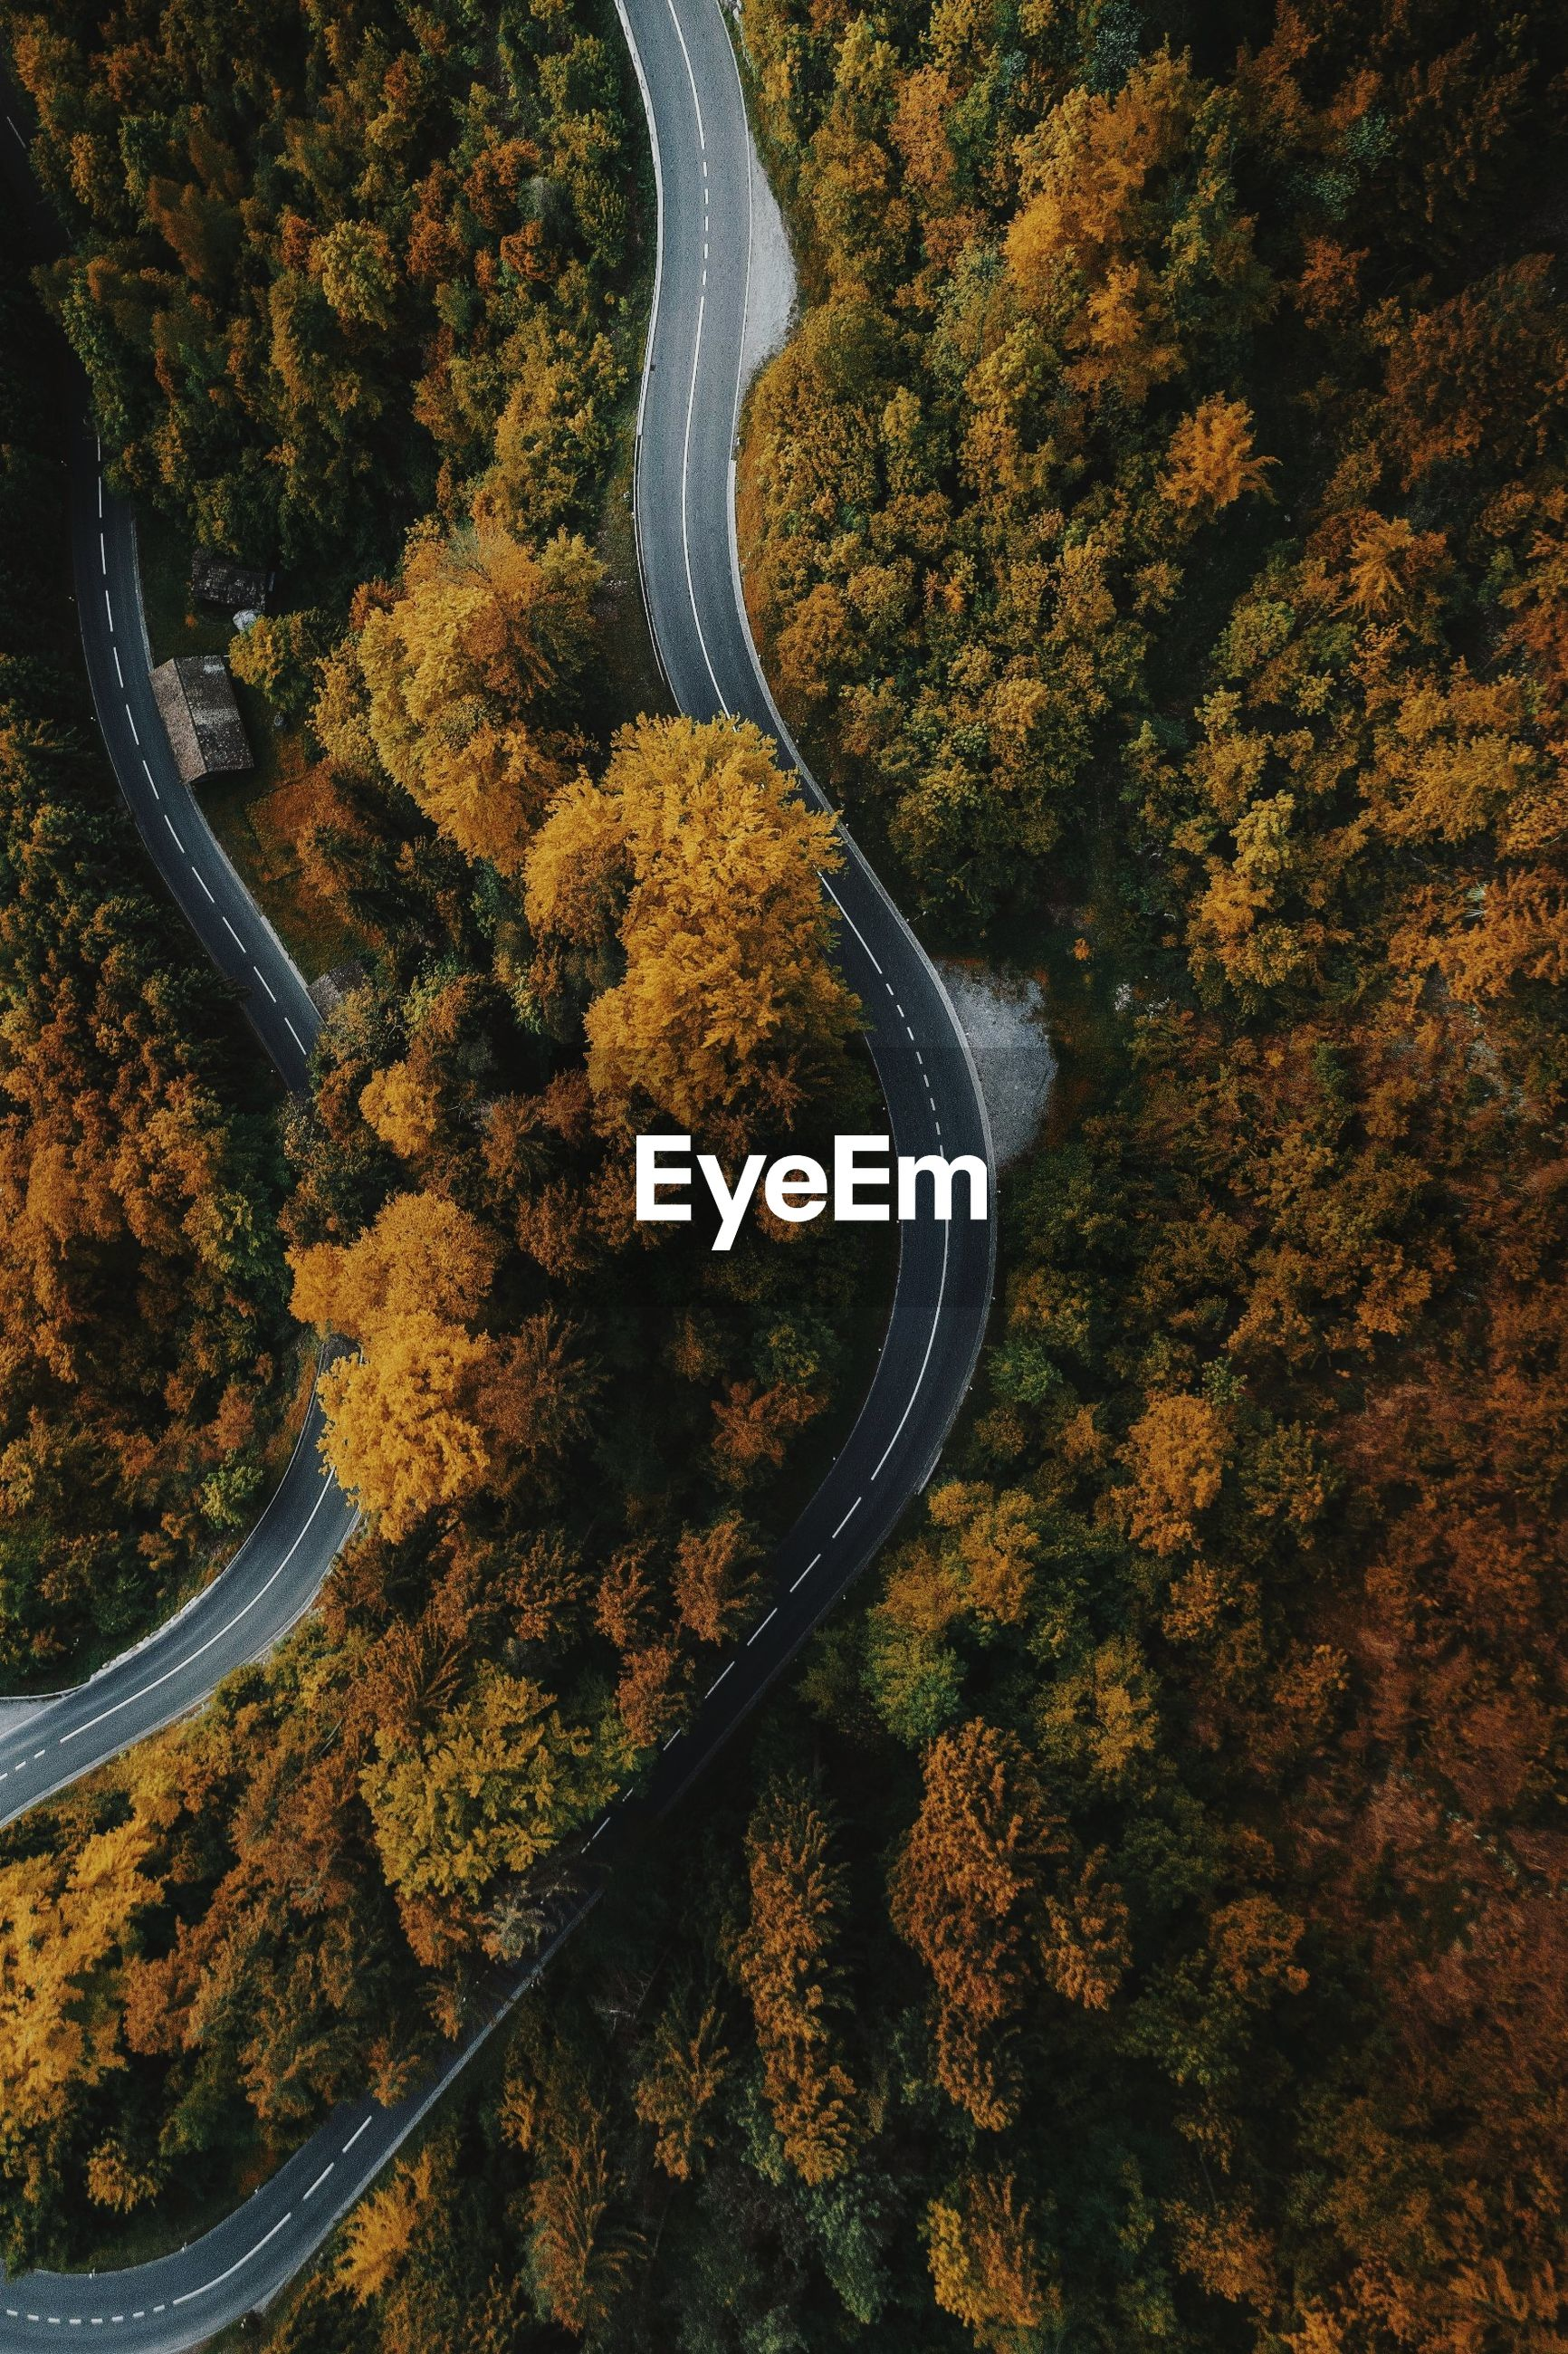 HIGH ANGLE VIEW OF ROAD BY AUTUMN TREES